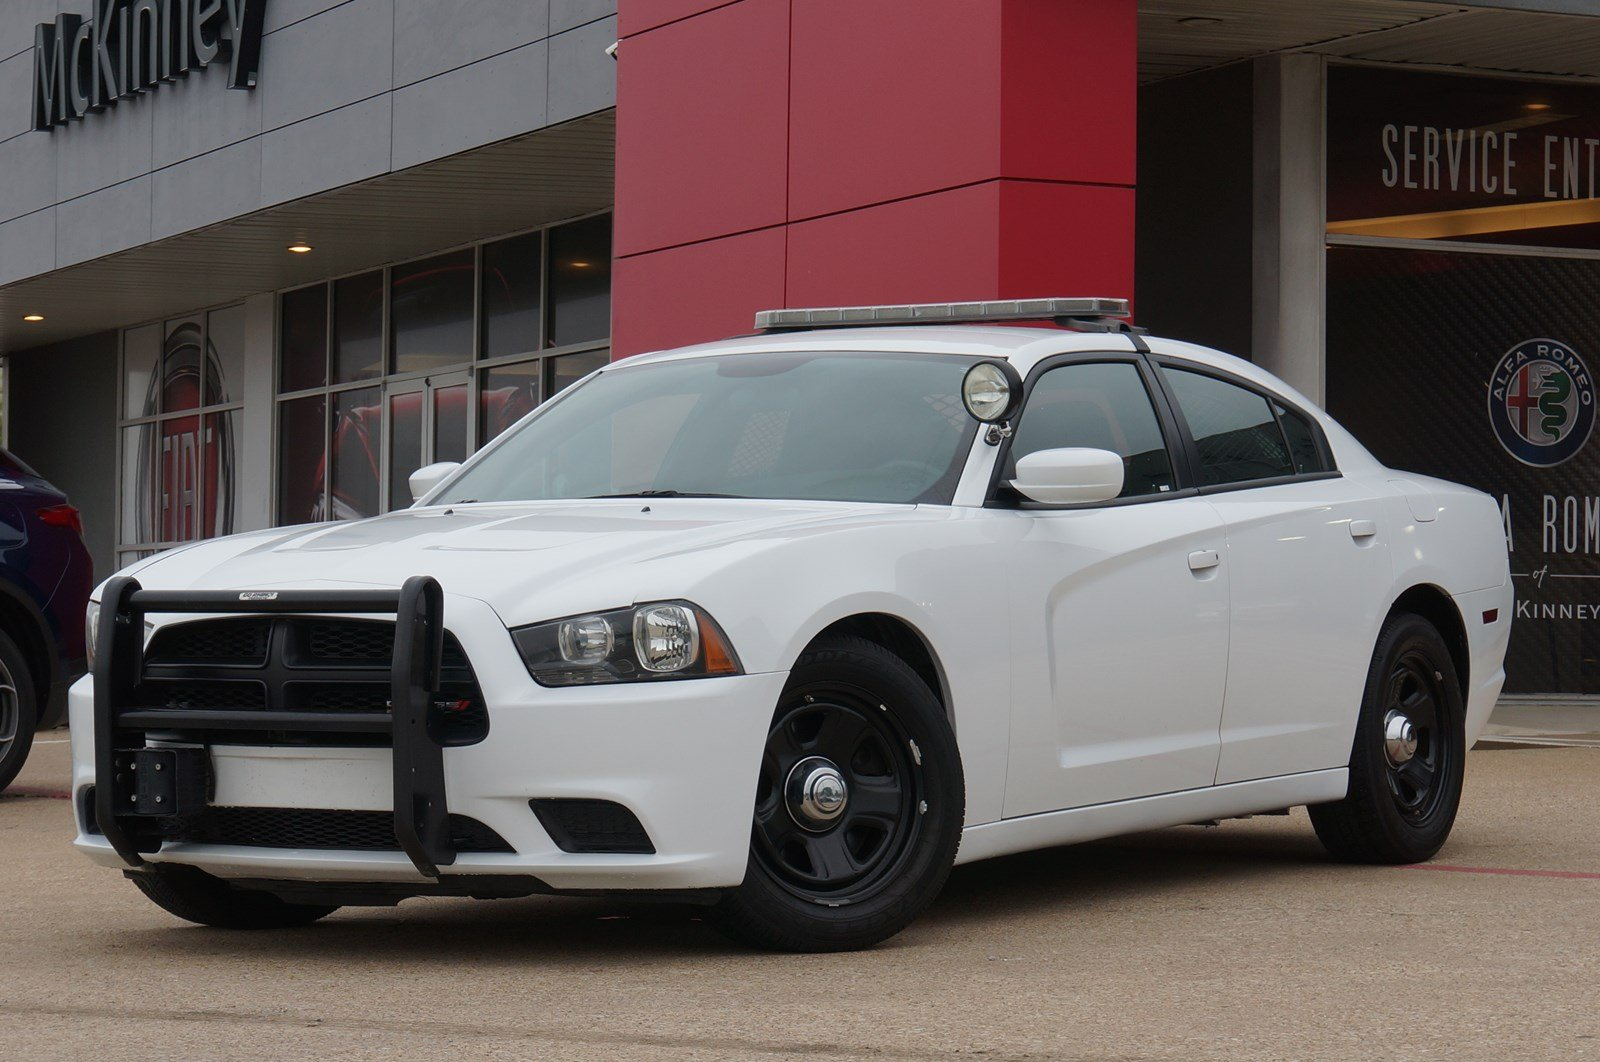 Photo 2014 Dodge Charger Police 4dr Car in McKinney